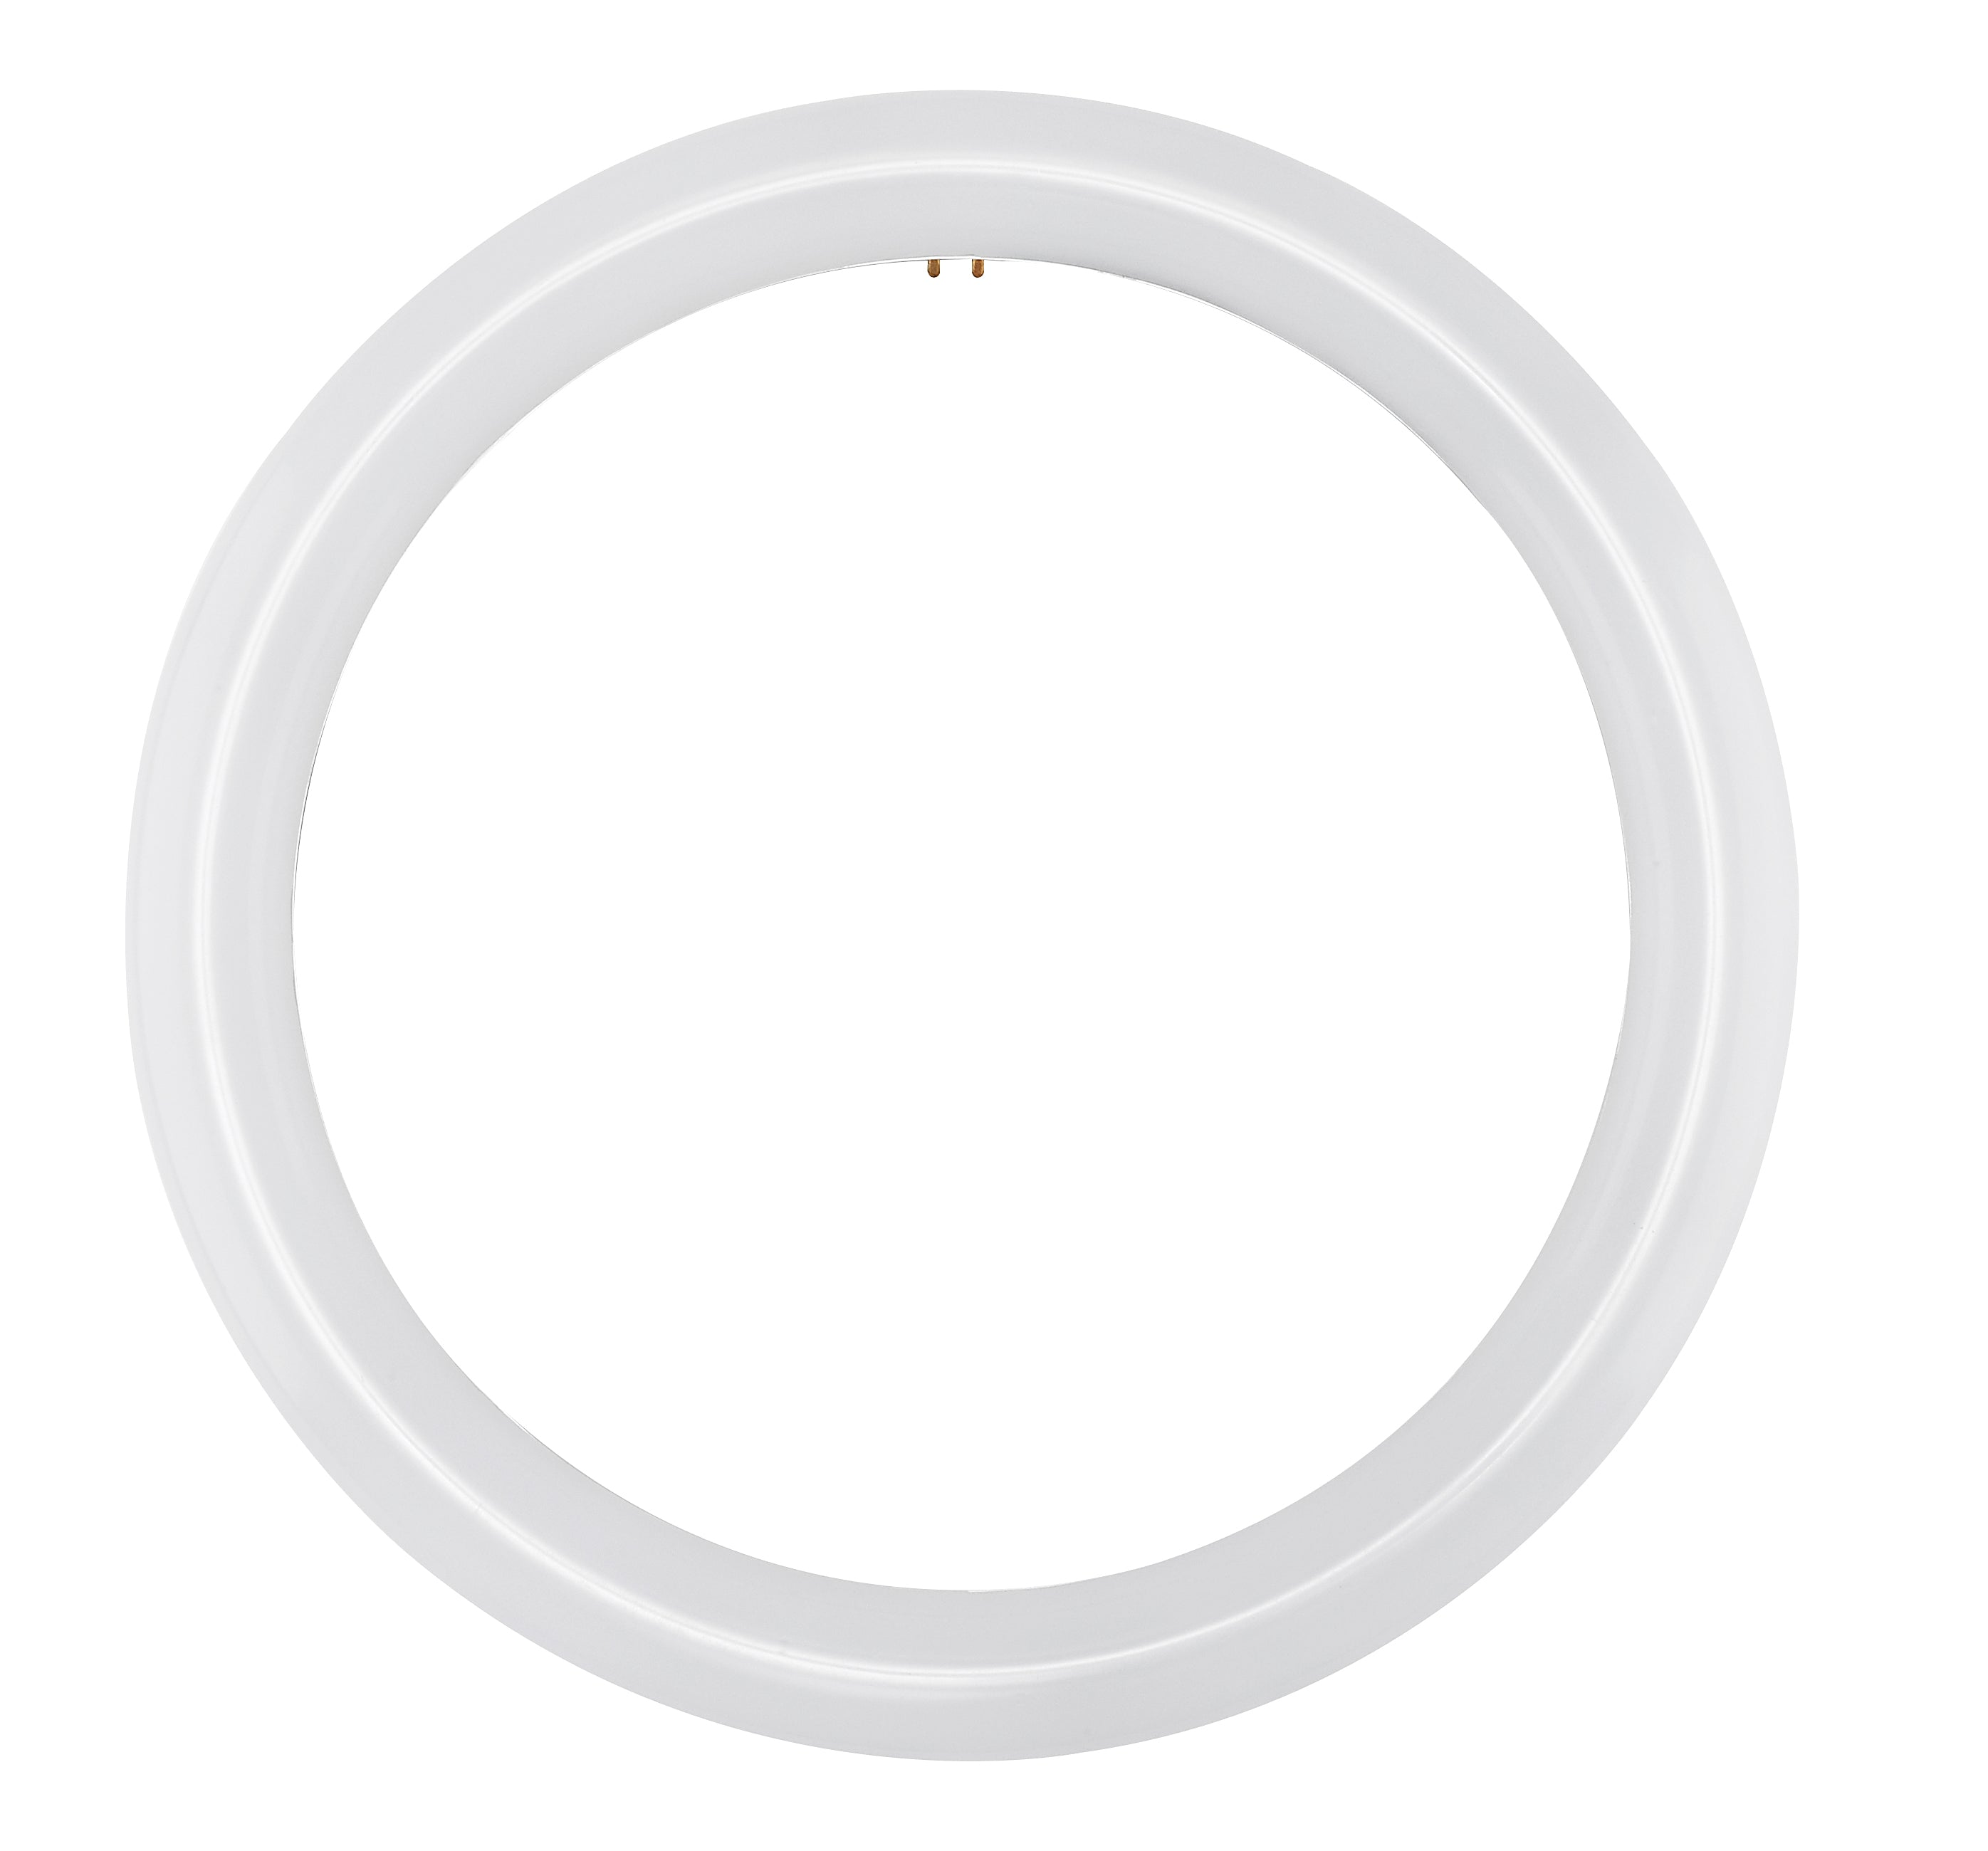 Satco 16w FC12T9 LED Circline 12in 1600lm 3000k Soft White - Ballast Bypass